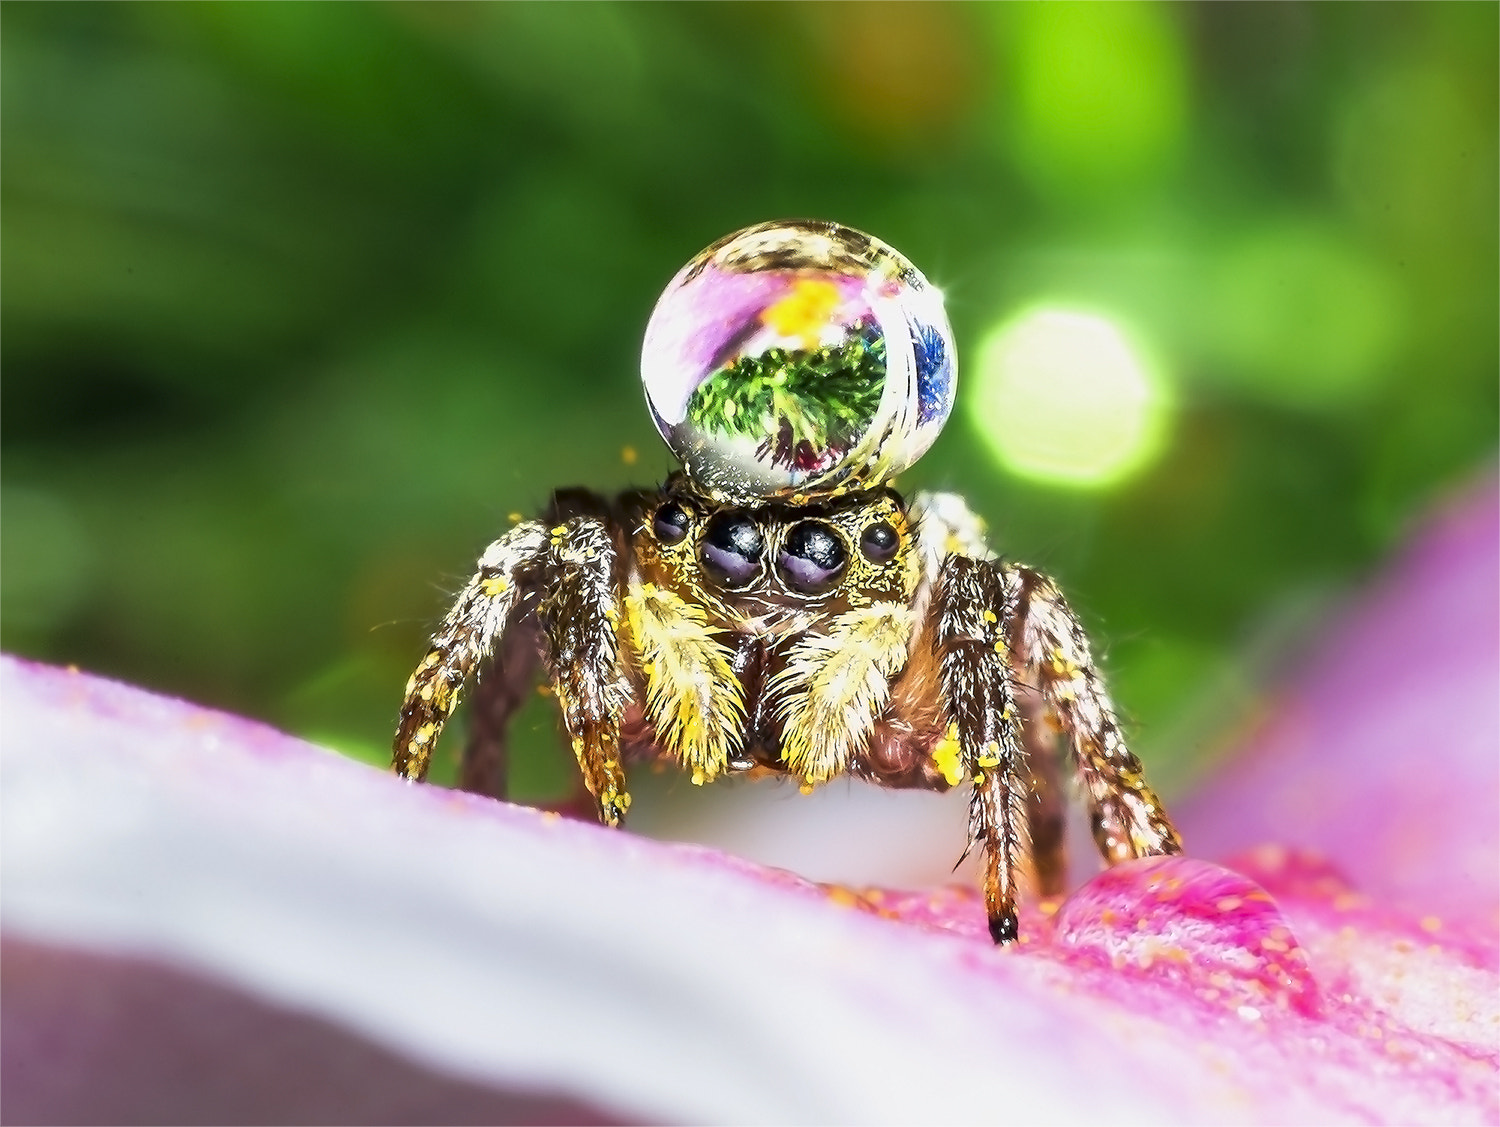 Photograph Spider2 by OKAWA โอ๋กะหว้า. somchai on 500px